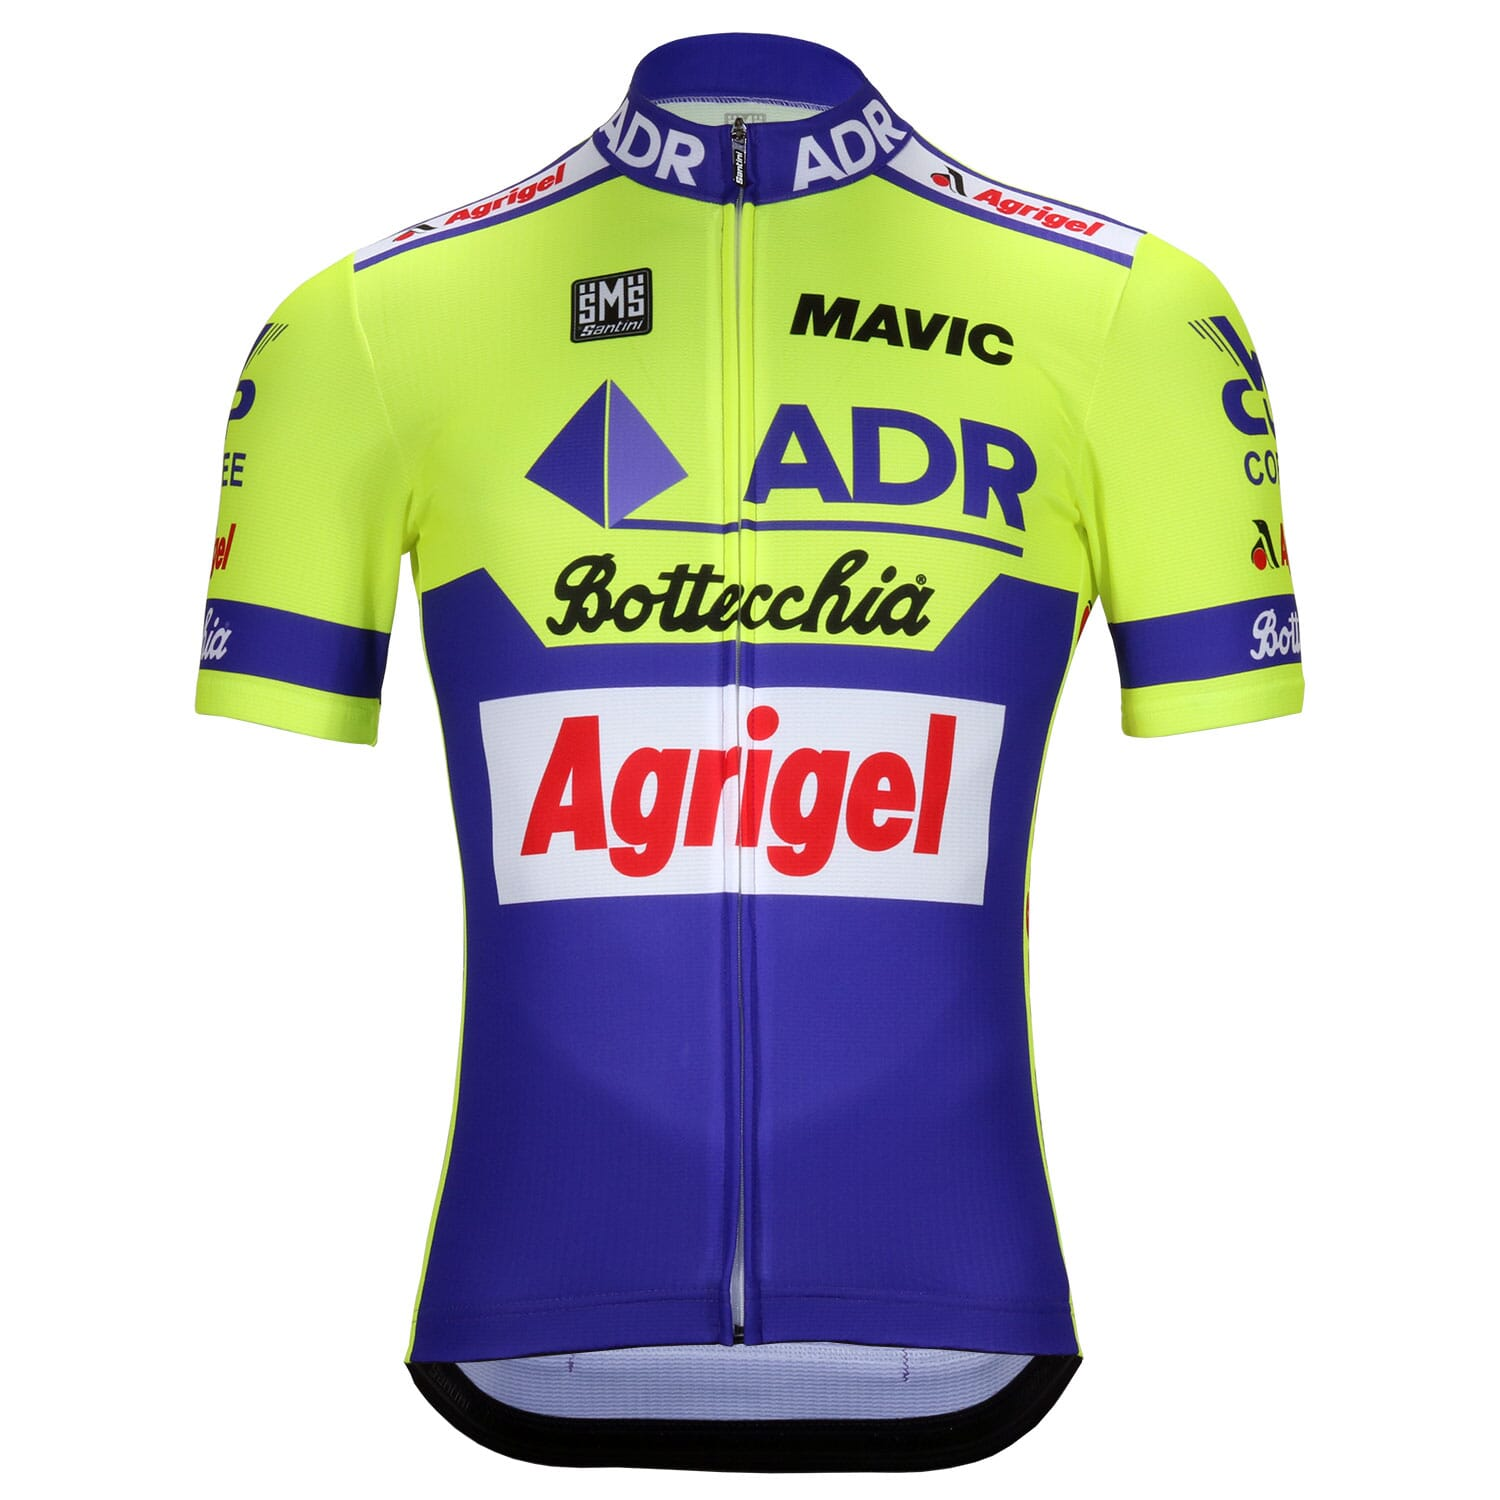 ADR/Agrigel/Bottecchia 1989 Retro Team Jersey